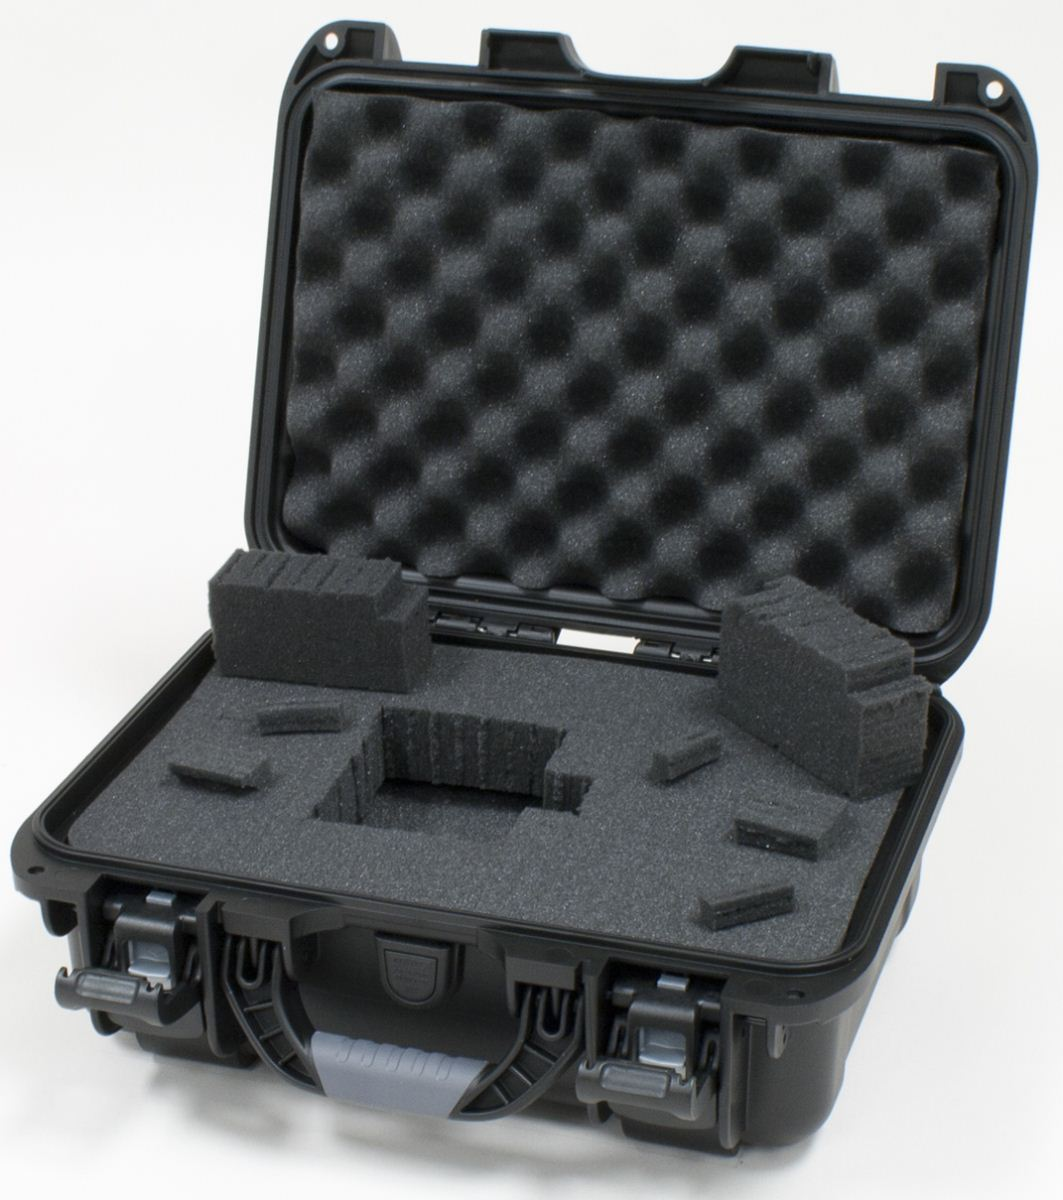 """Gator Cases GU-1309-06-WPDF Black waterproof injection molded case with interior dimensions of 13.8"""" x 9.3"""" x 6.2"""". DICED FOAM"""